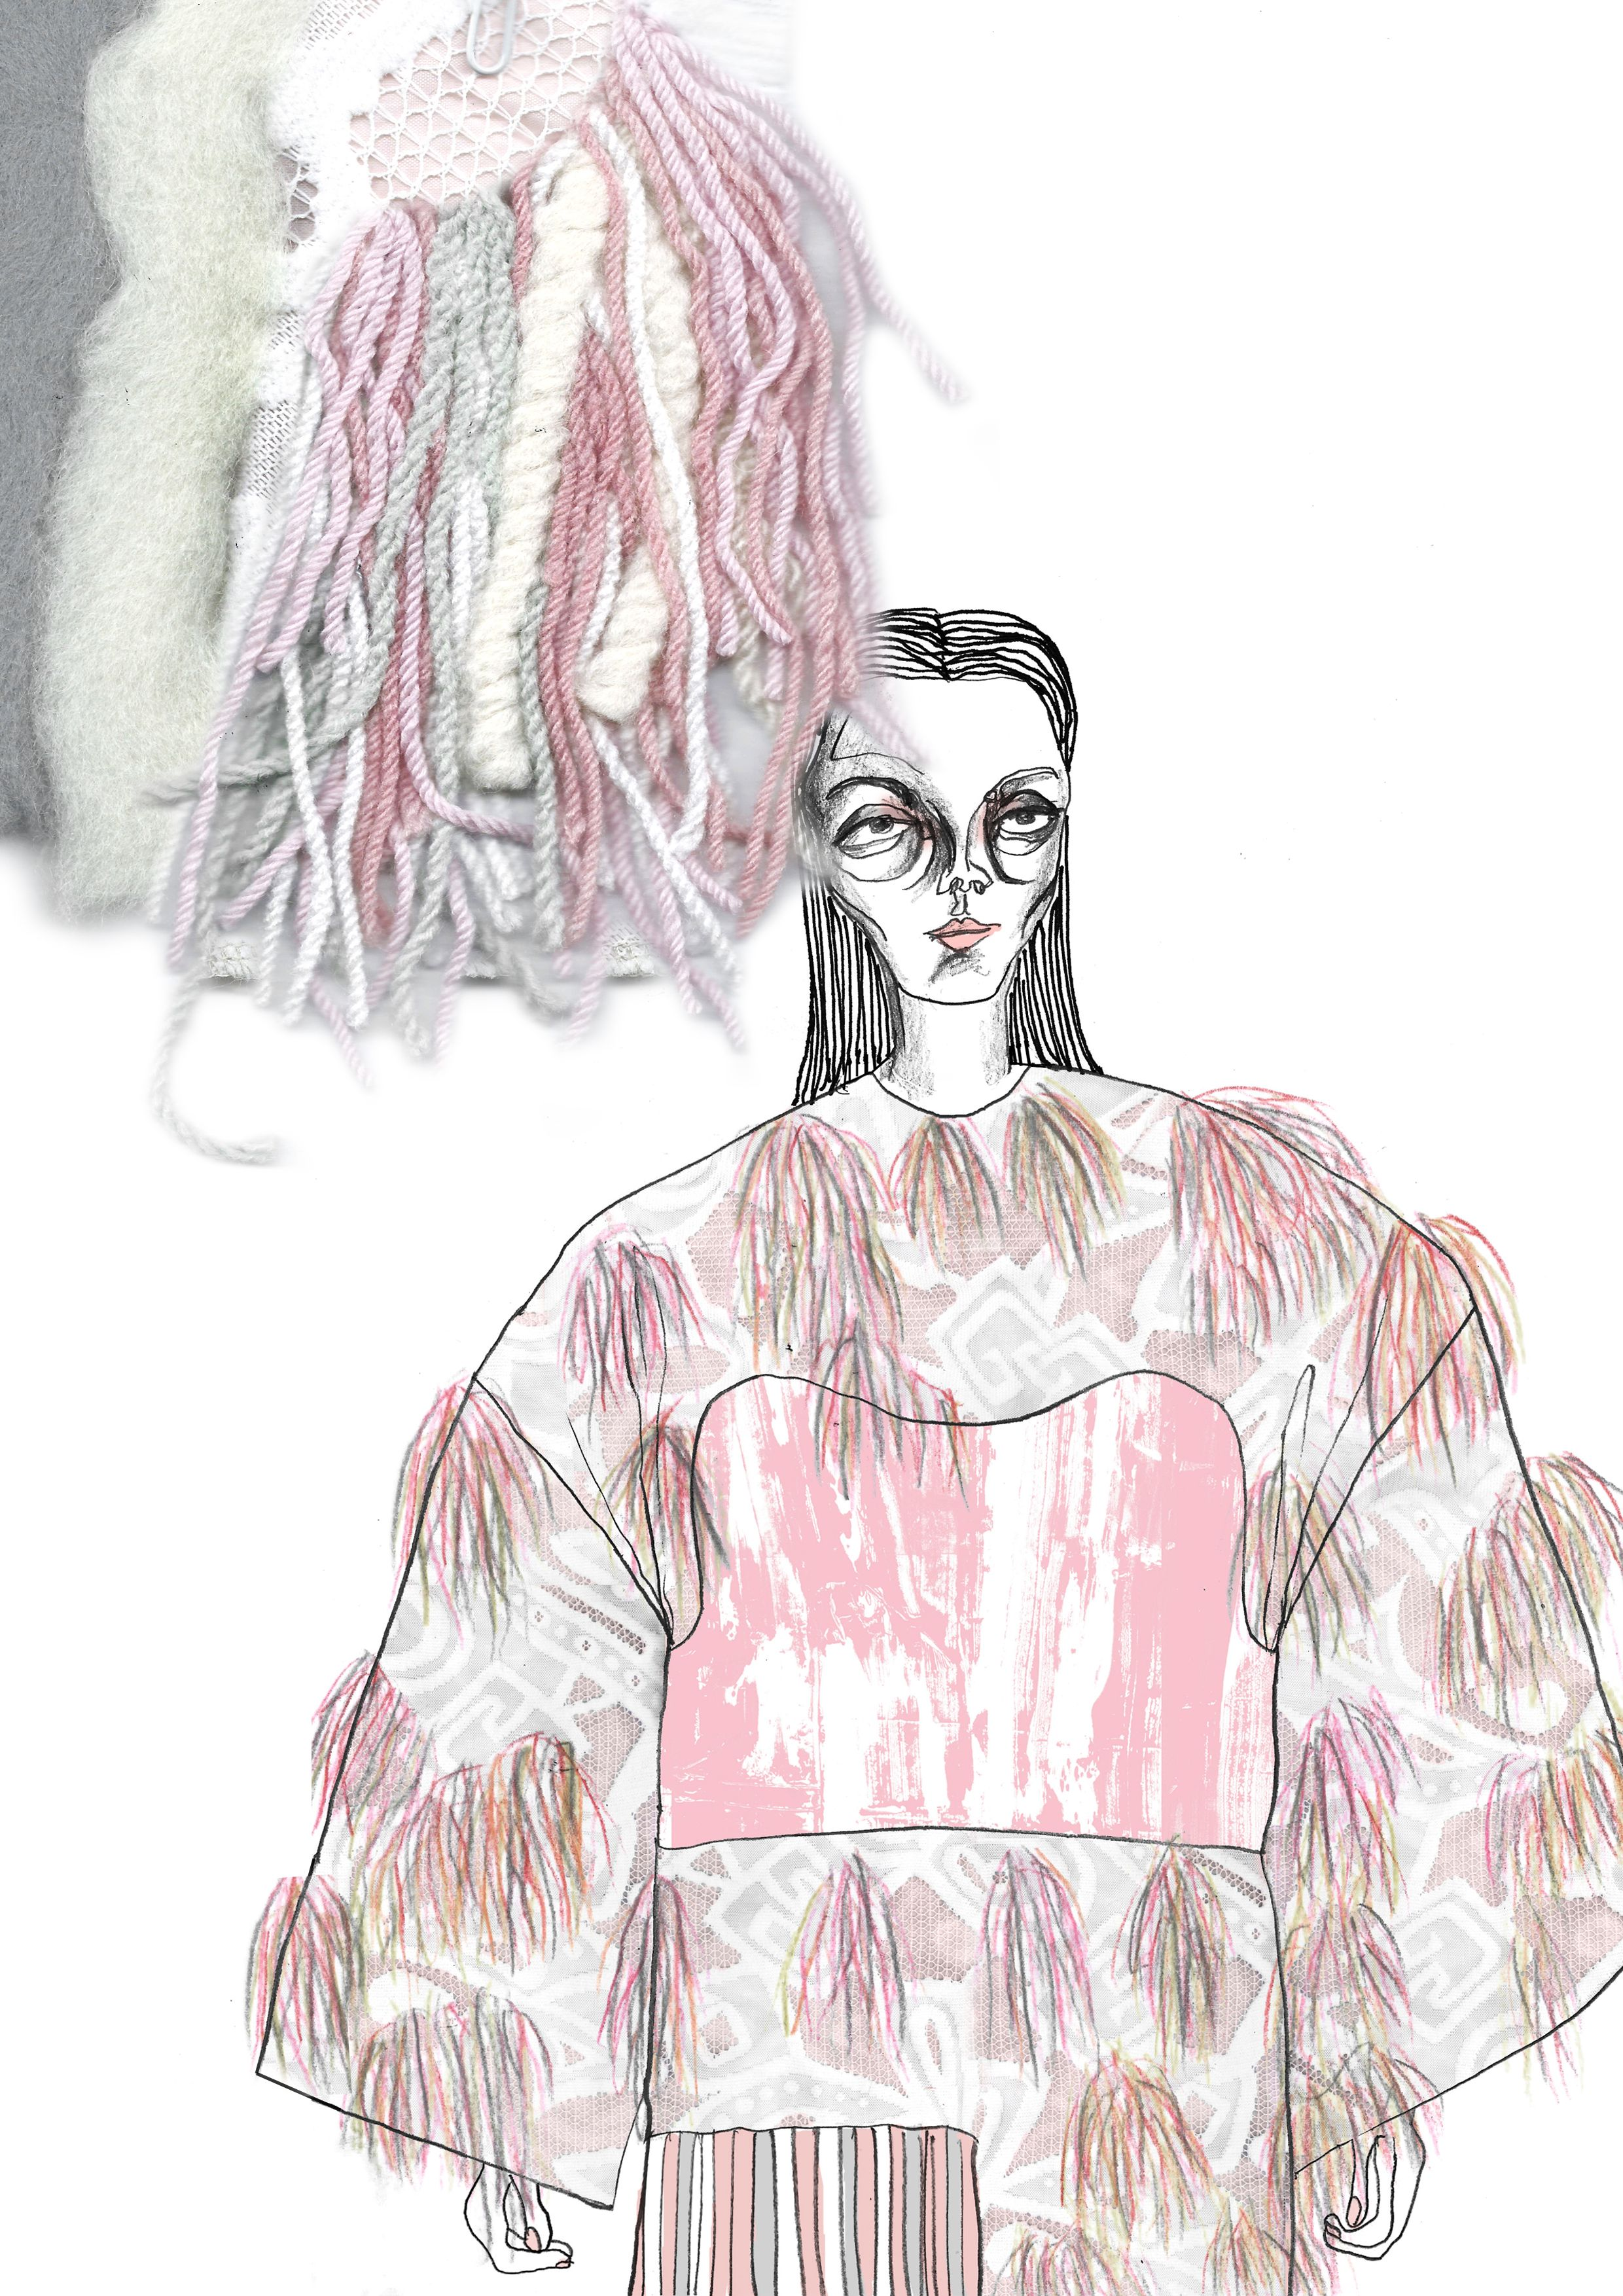 Fashion Design Graduate From University Of Westminster Specialising In Womenswear Print Fashion Design Portfolio Fashion Design Sketchbook Fashion Illustration